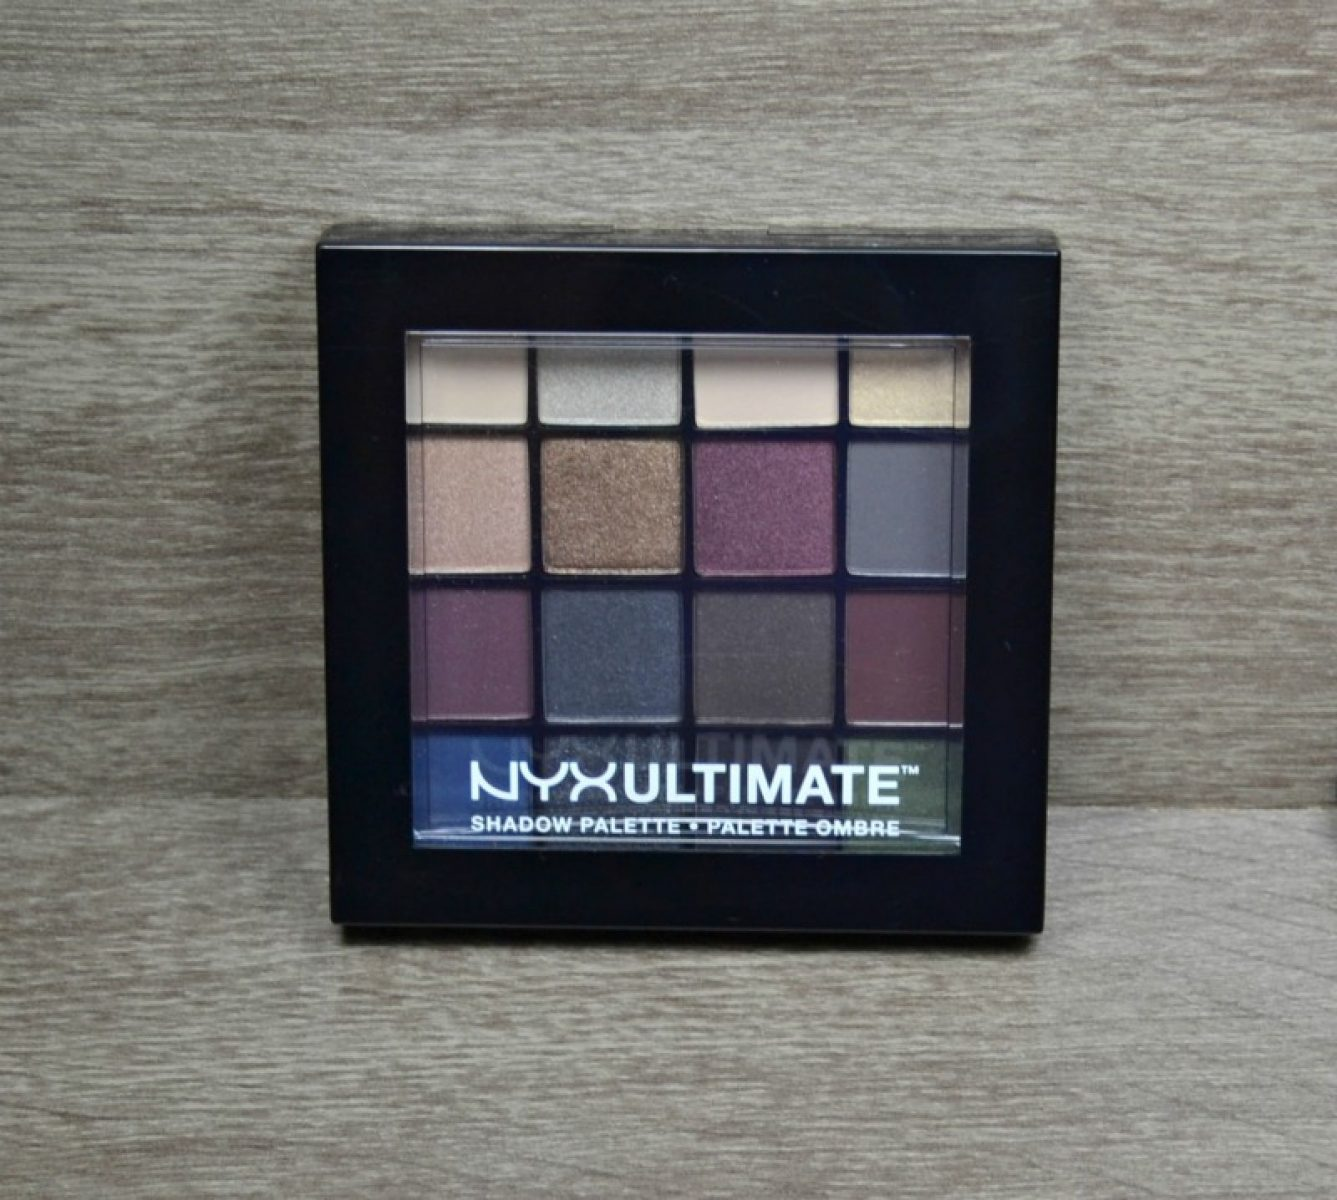 NYX Ultimate Shadow Palette – Smokey & Highlight